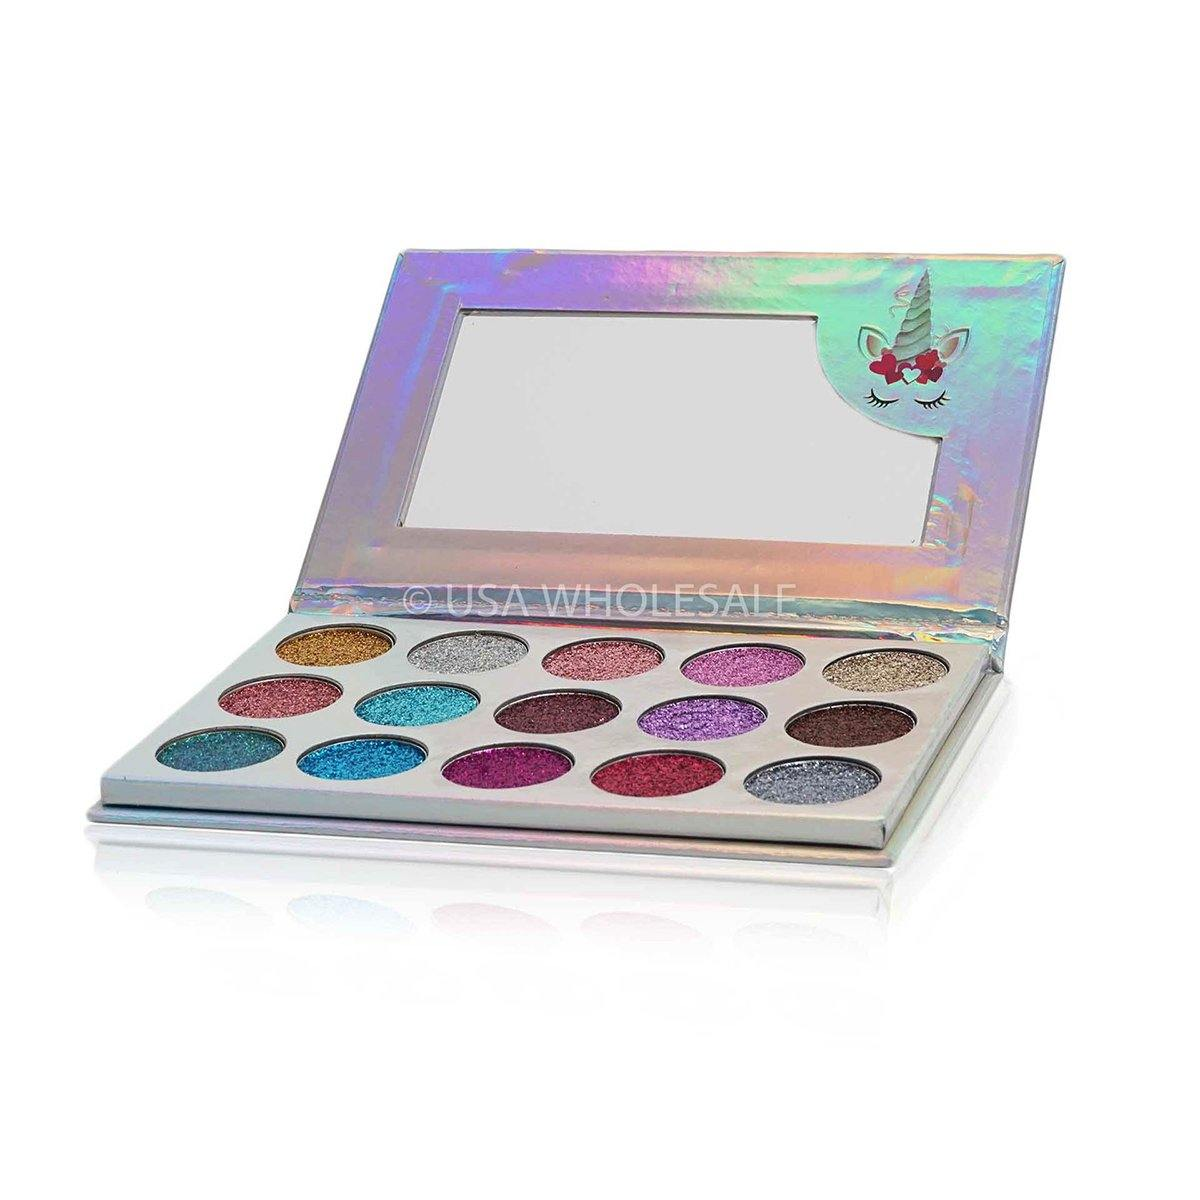 BEAUTY CREATIONS | Unicorn Dream Glitter Eyeshadow Palette (15 Colors X Case of 12)